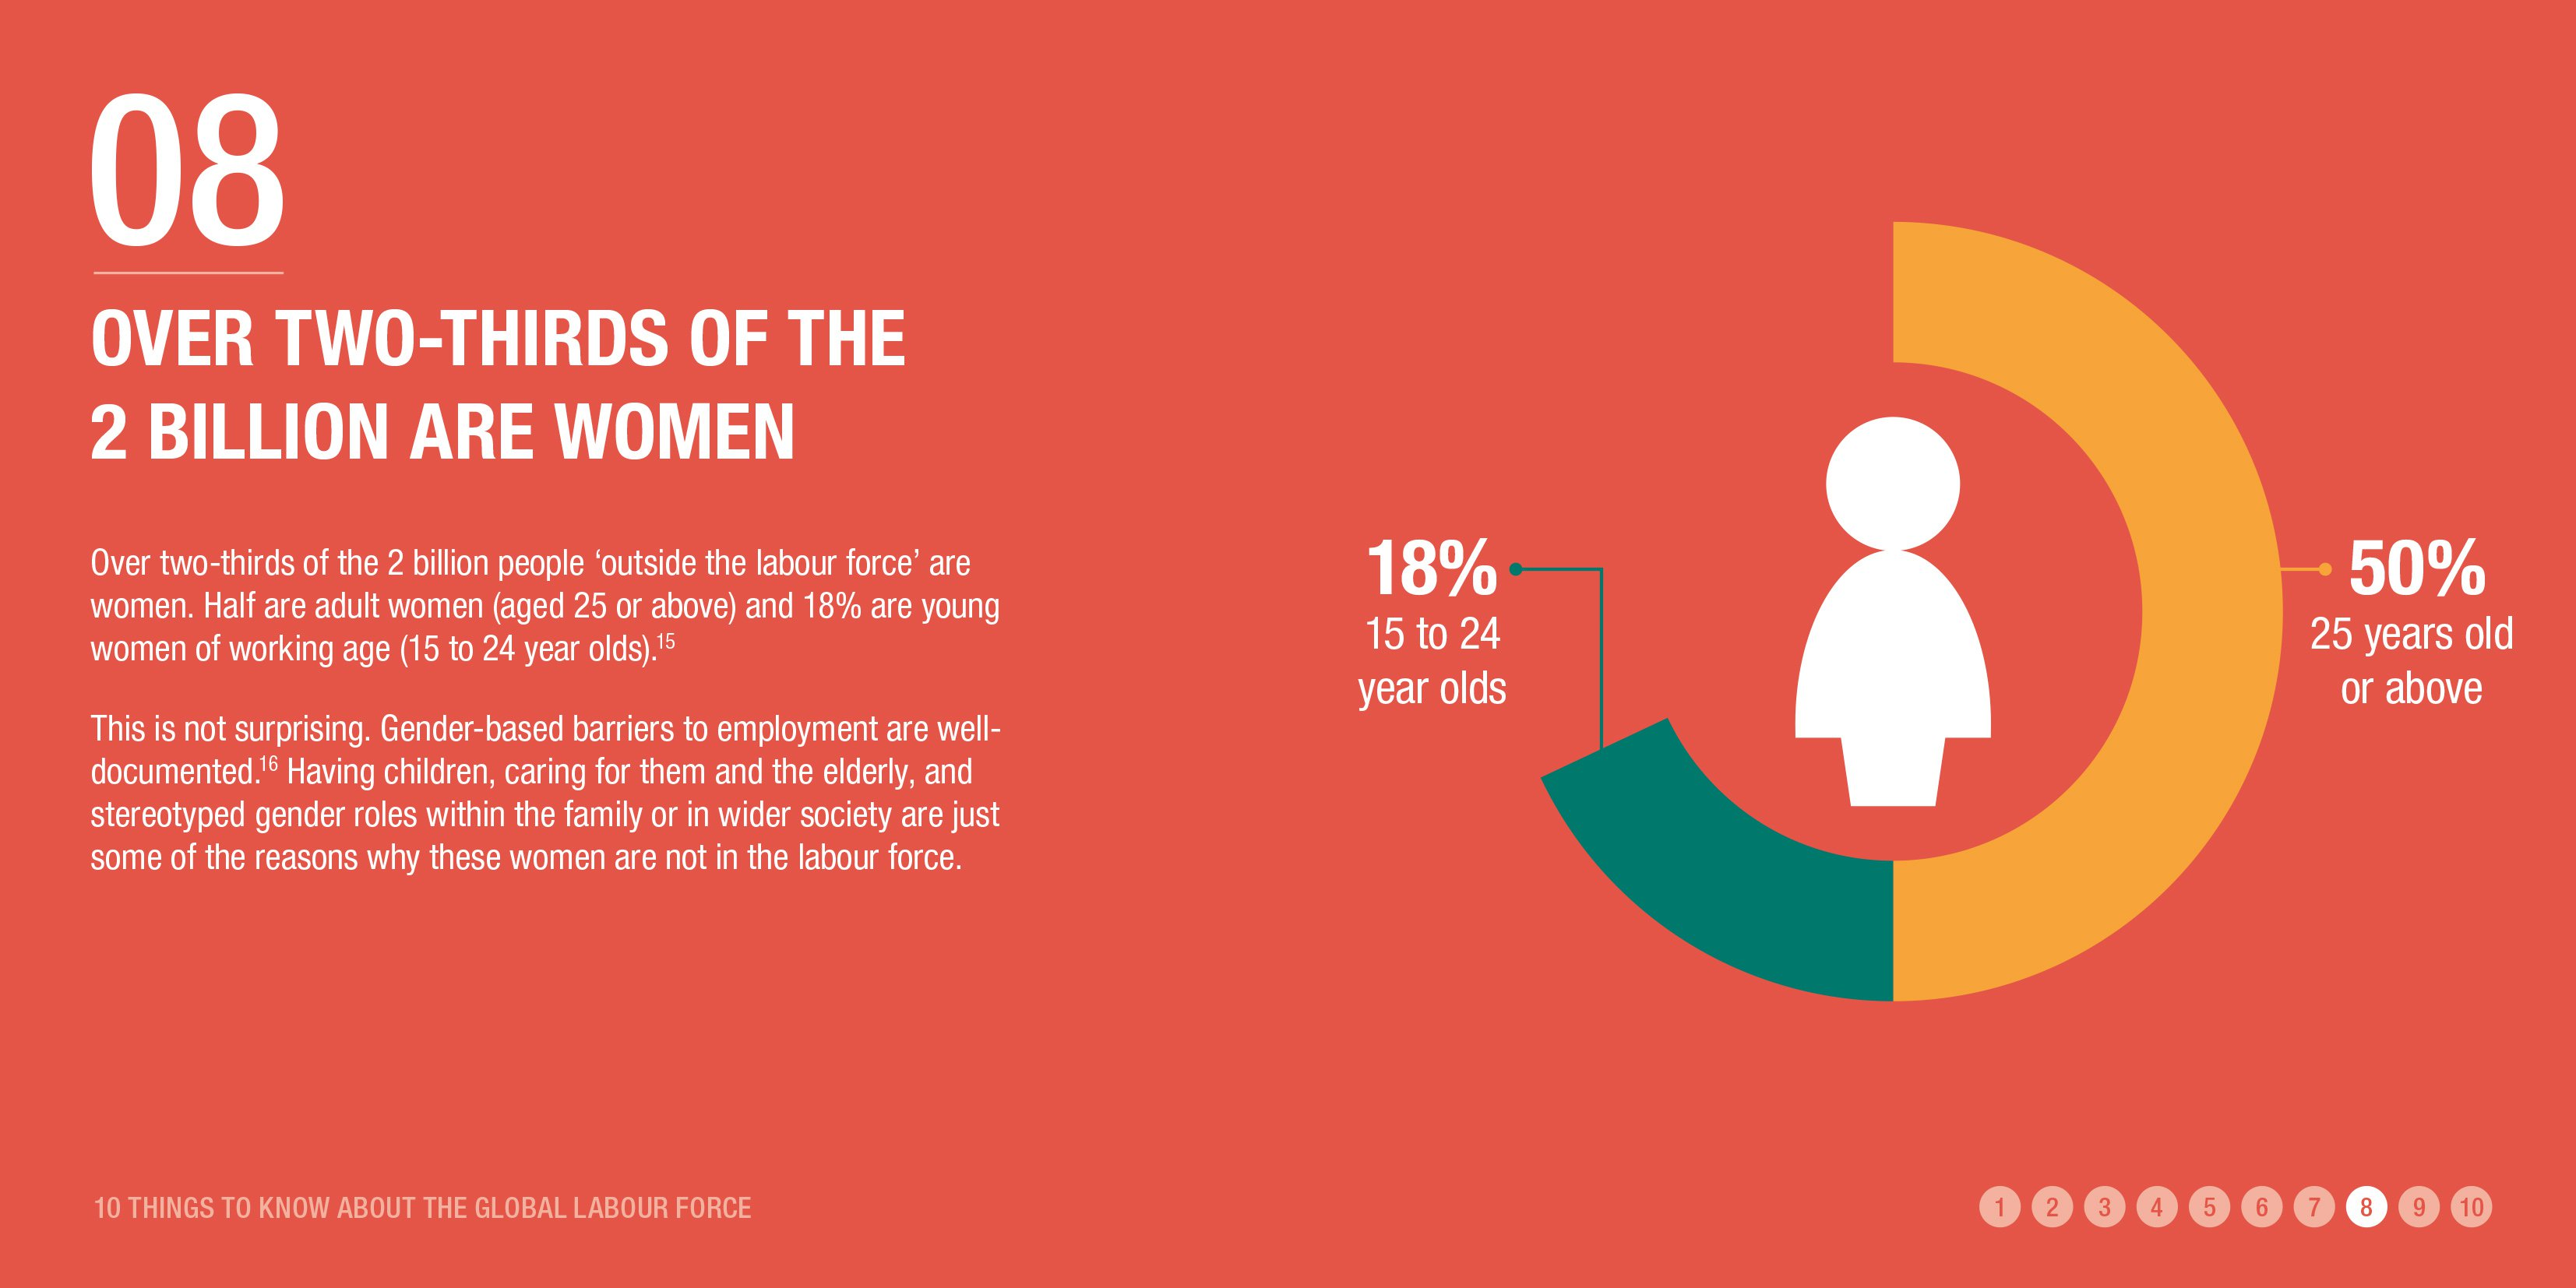 Over two-thirds of the 2 billion are women